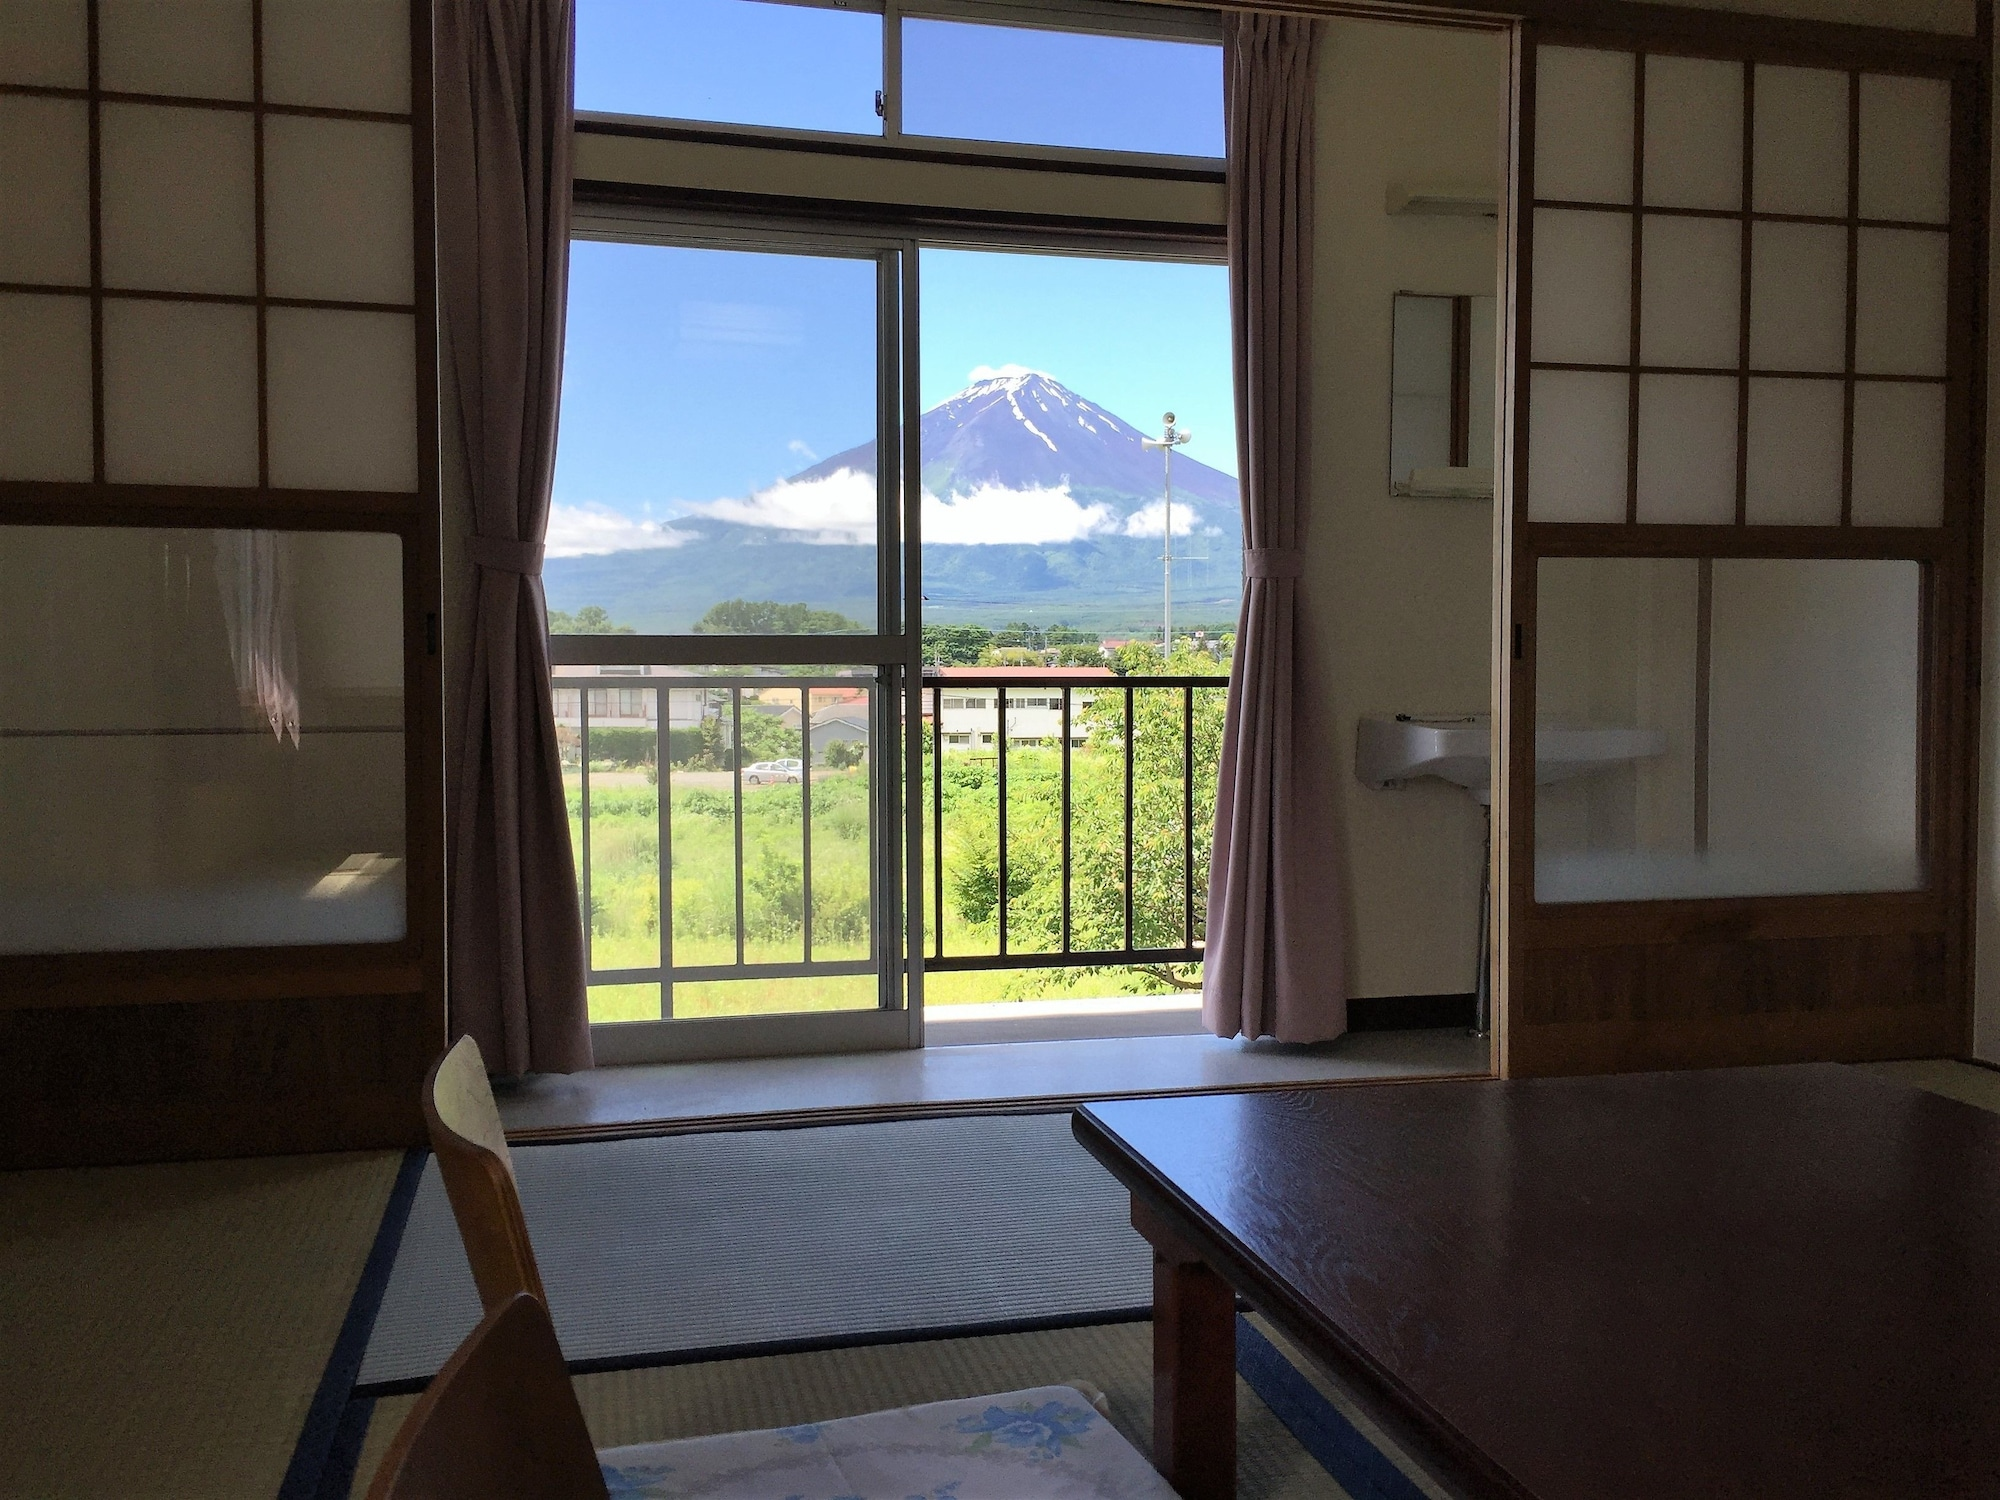 FBH Fuji Backpackers Hostel, Fujikawaguchiko